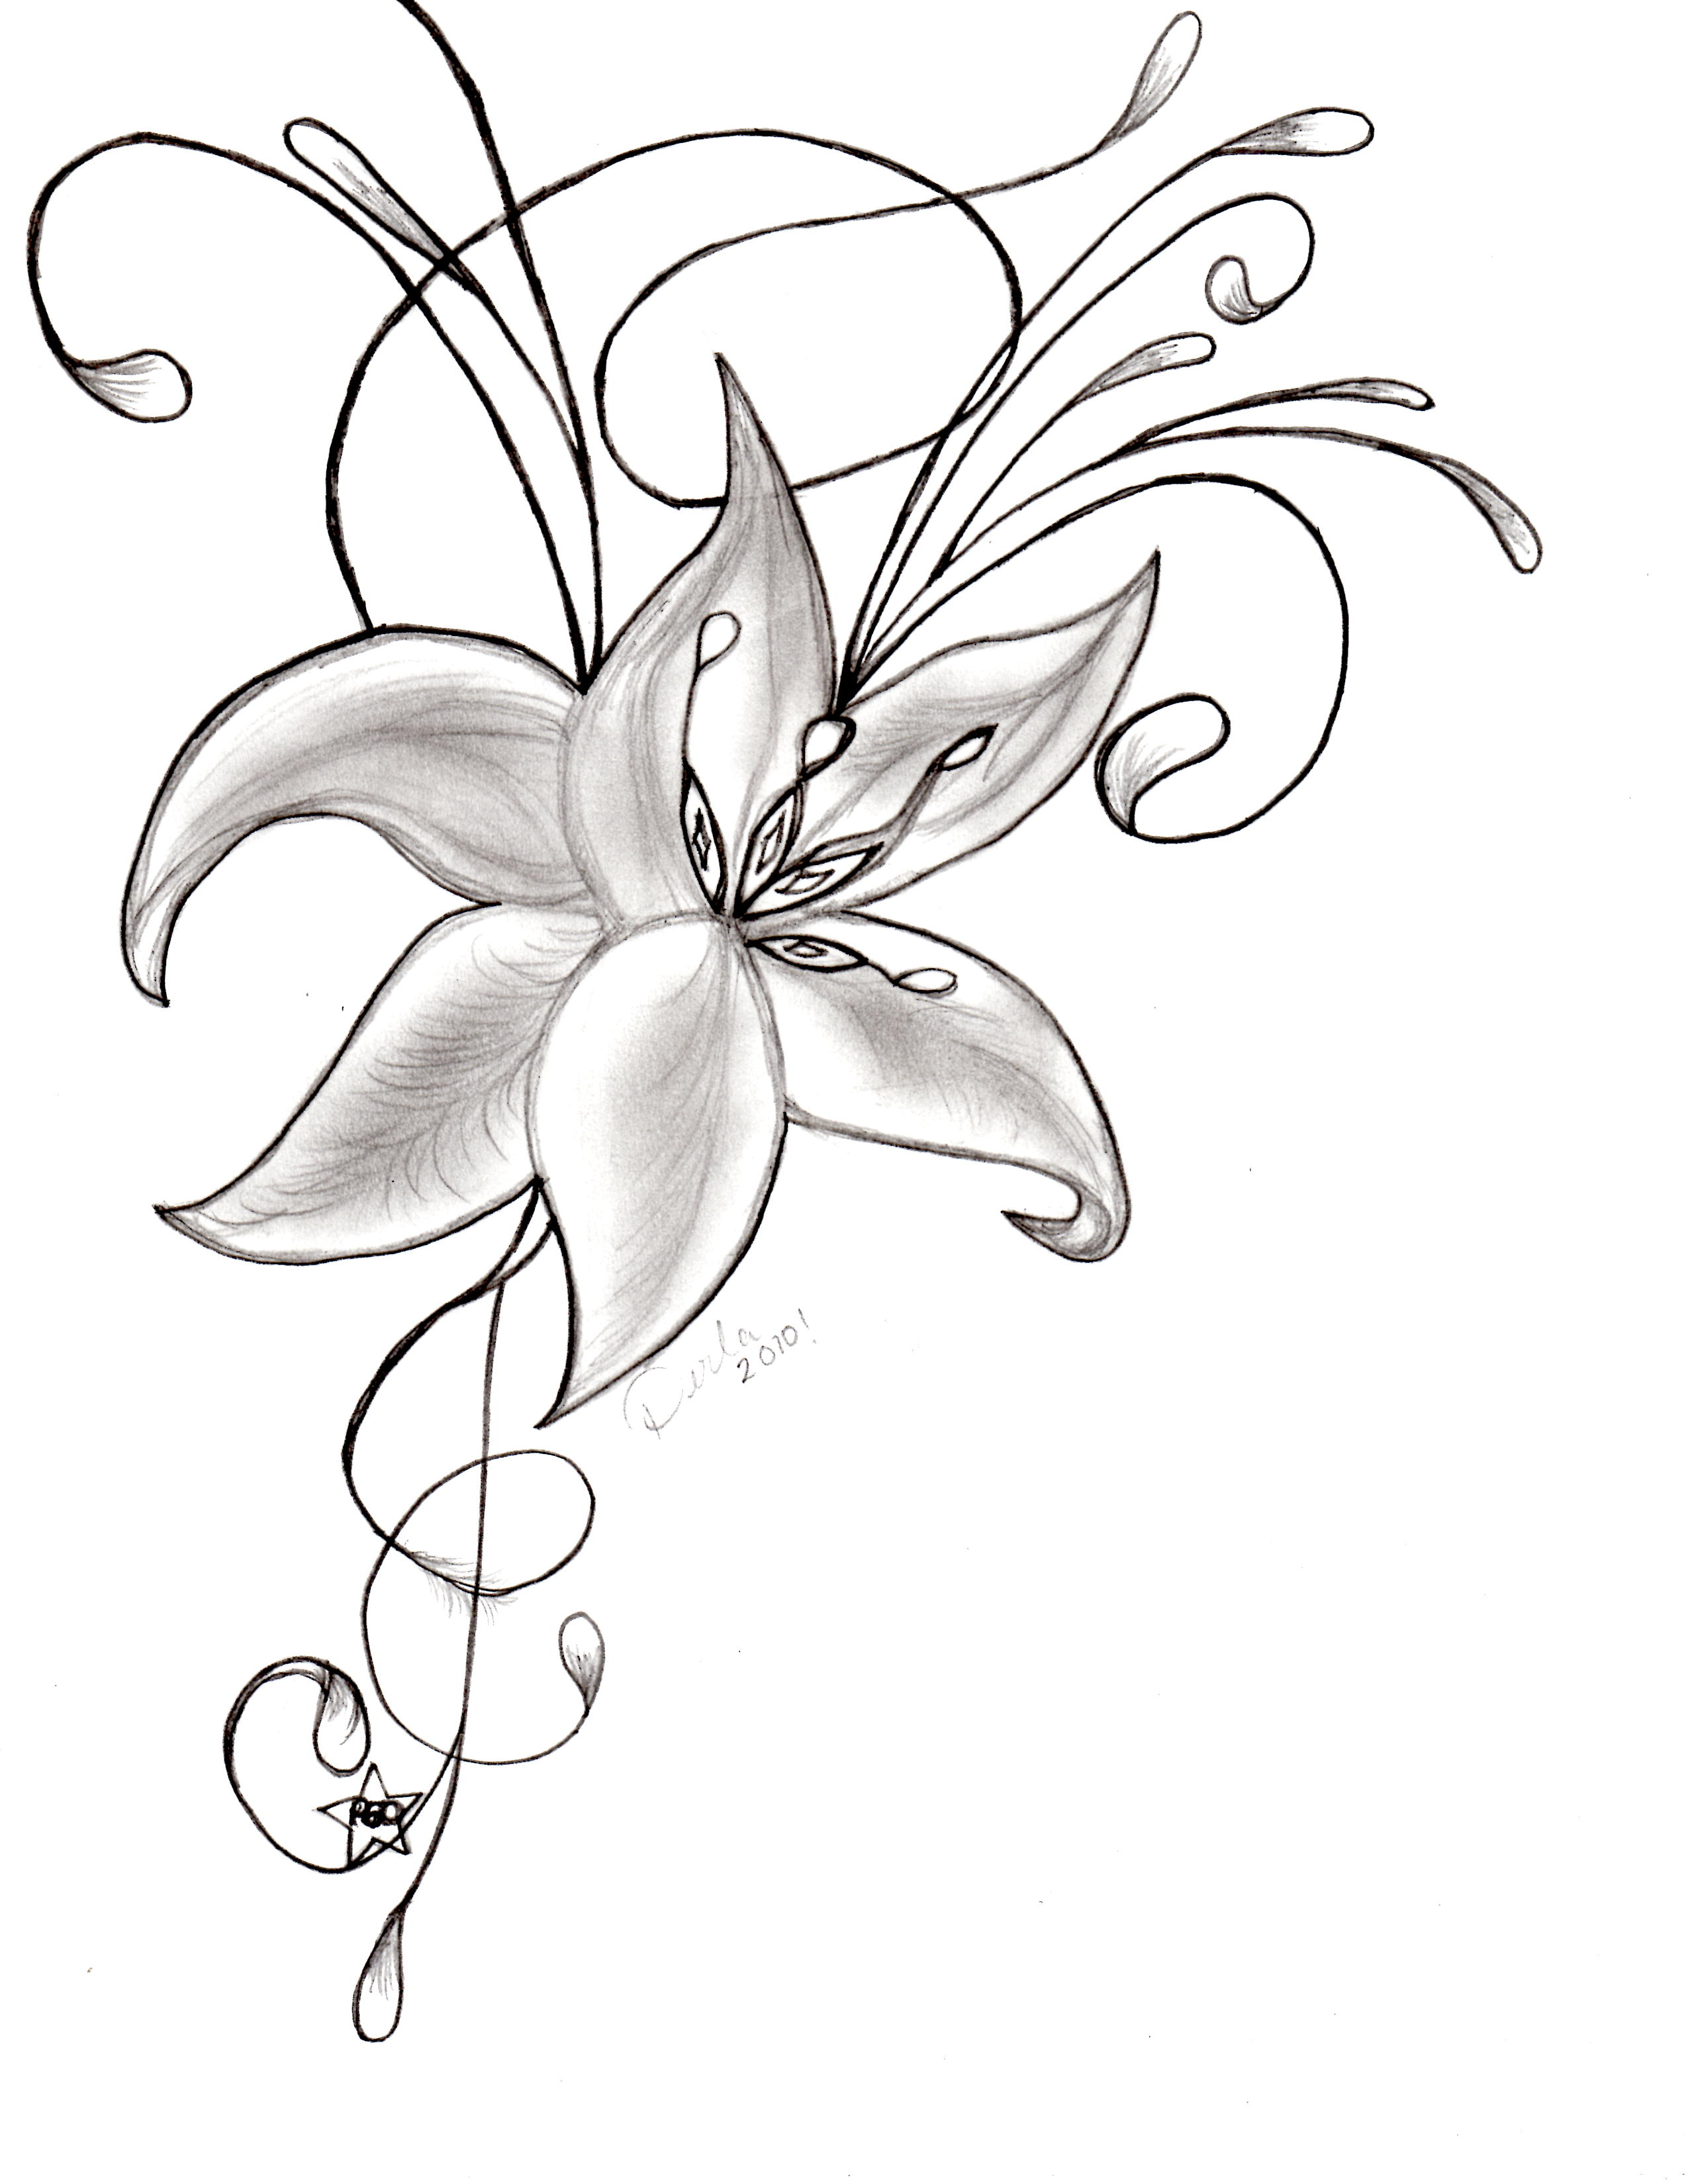 2550x3300 Gousicteco Orchid Drawing Easy Images